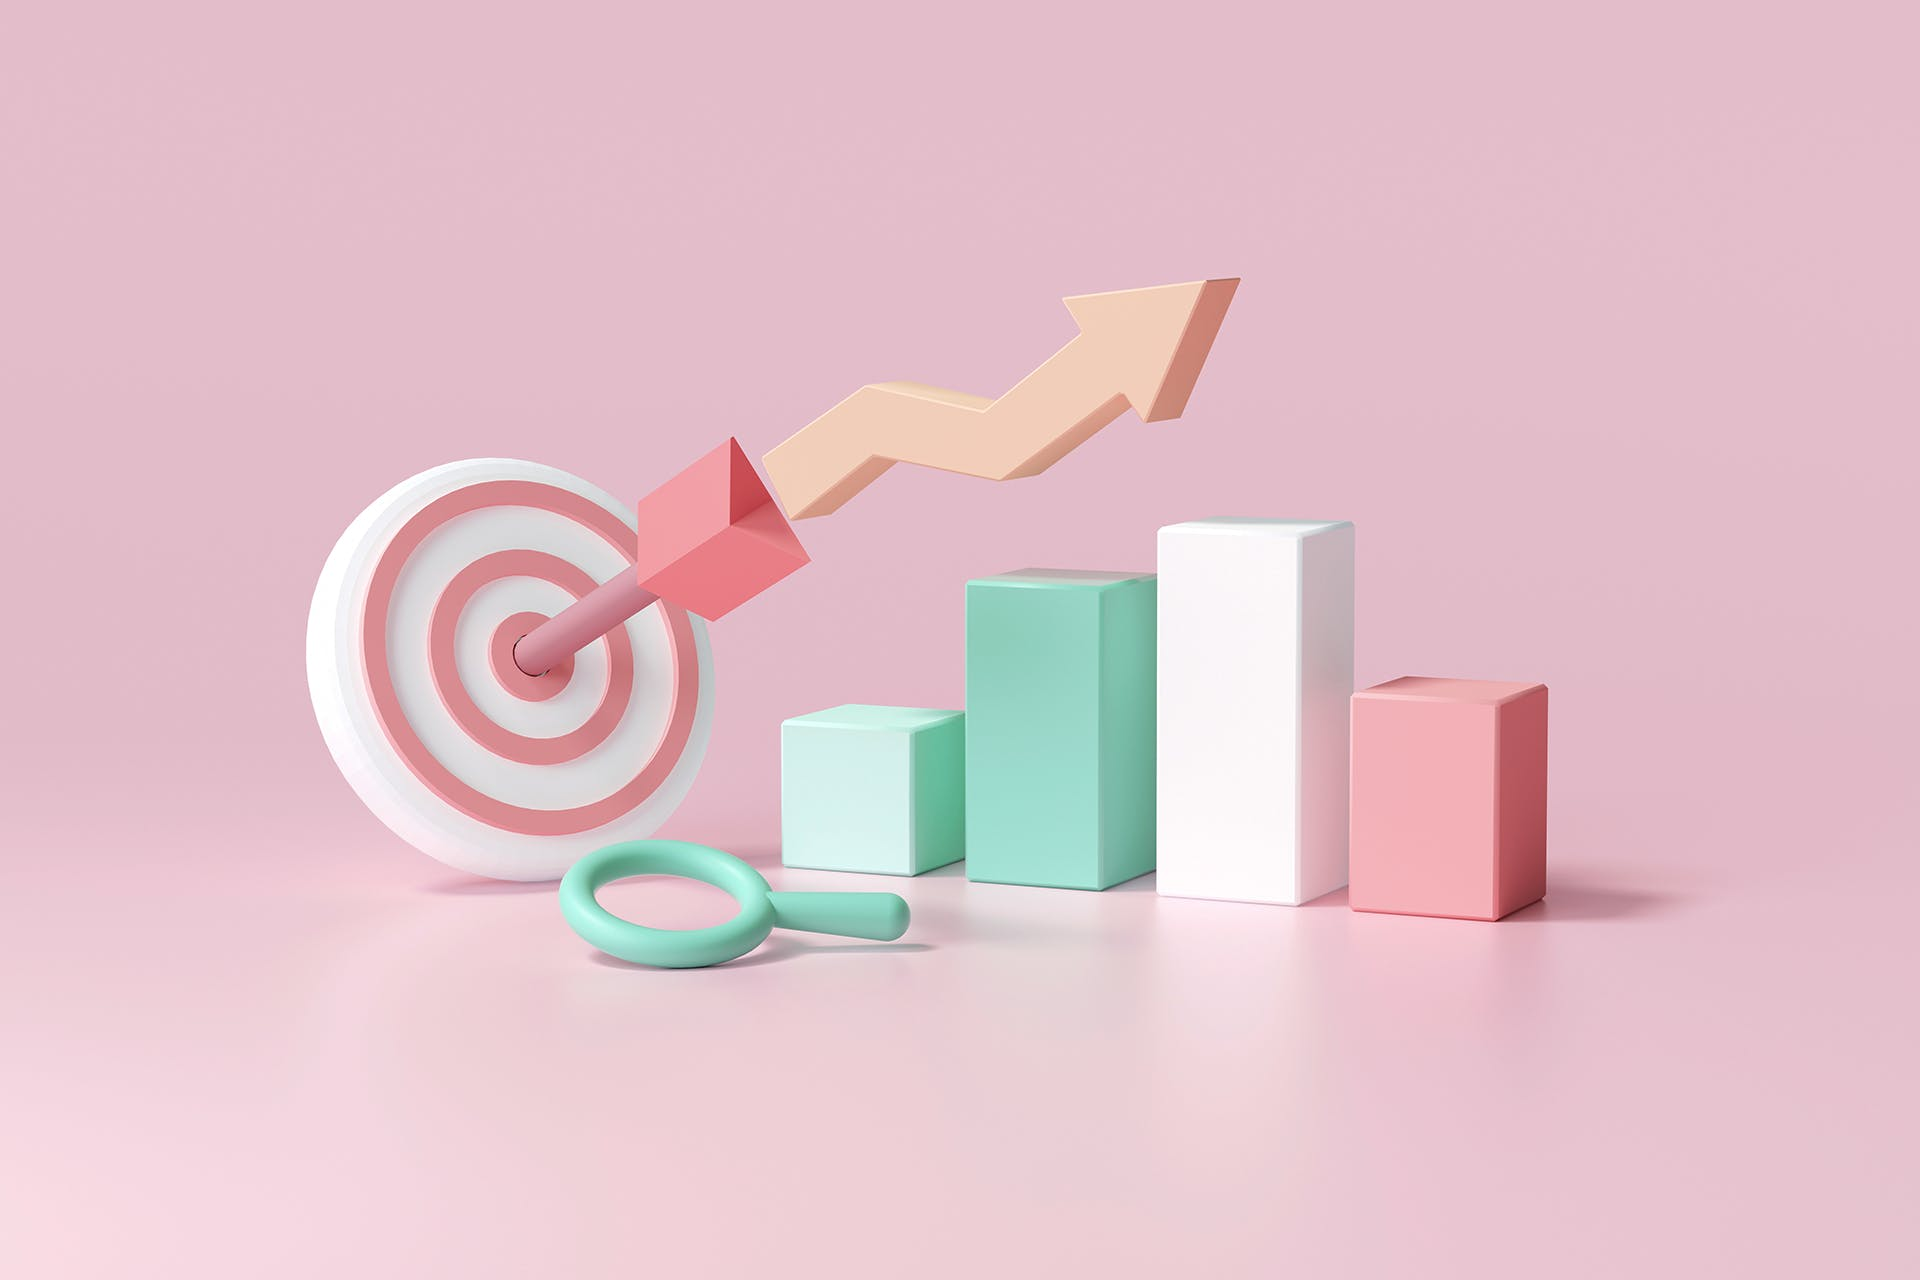 A collection of objects, like a bullseye target, bar chart and magnifying glass, that are meant to represent social media marketing metrics small businesses could evaluate